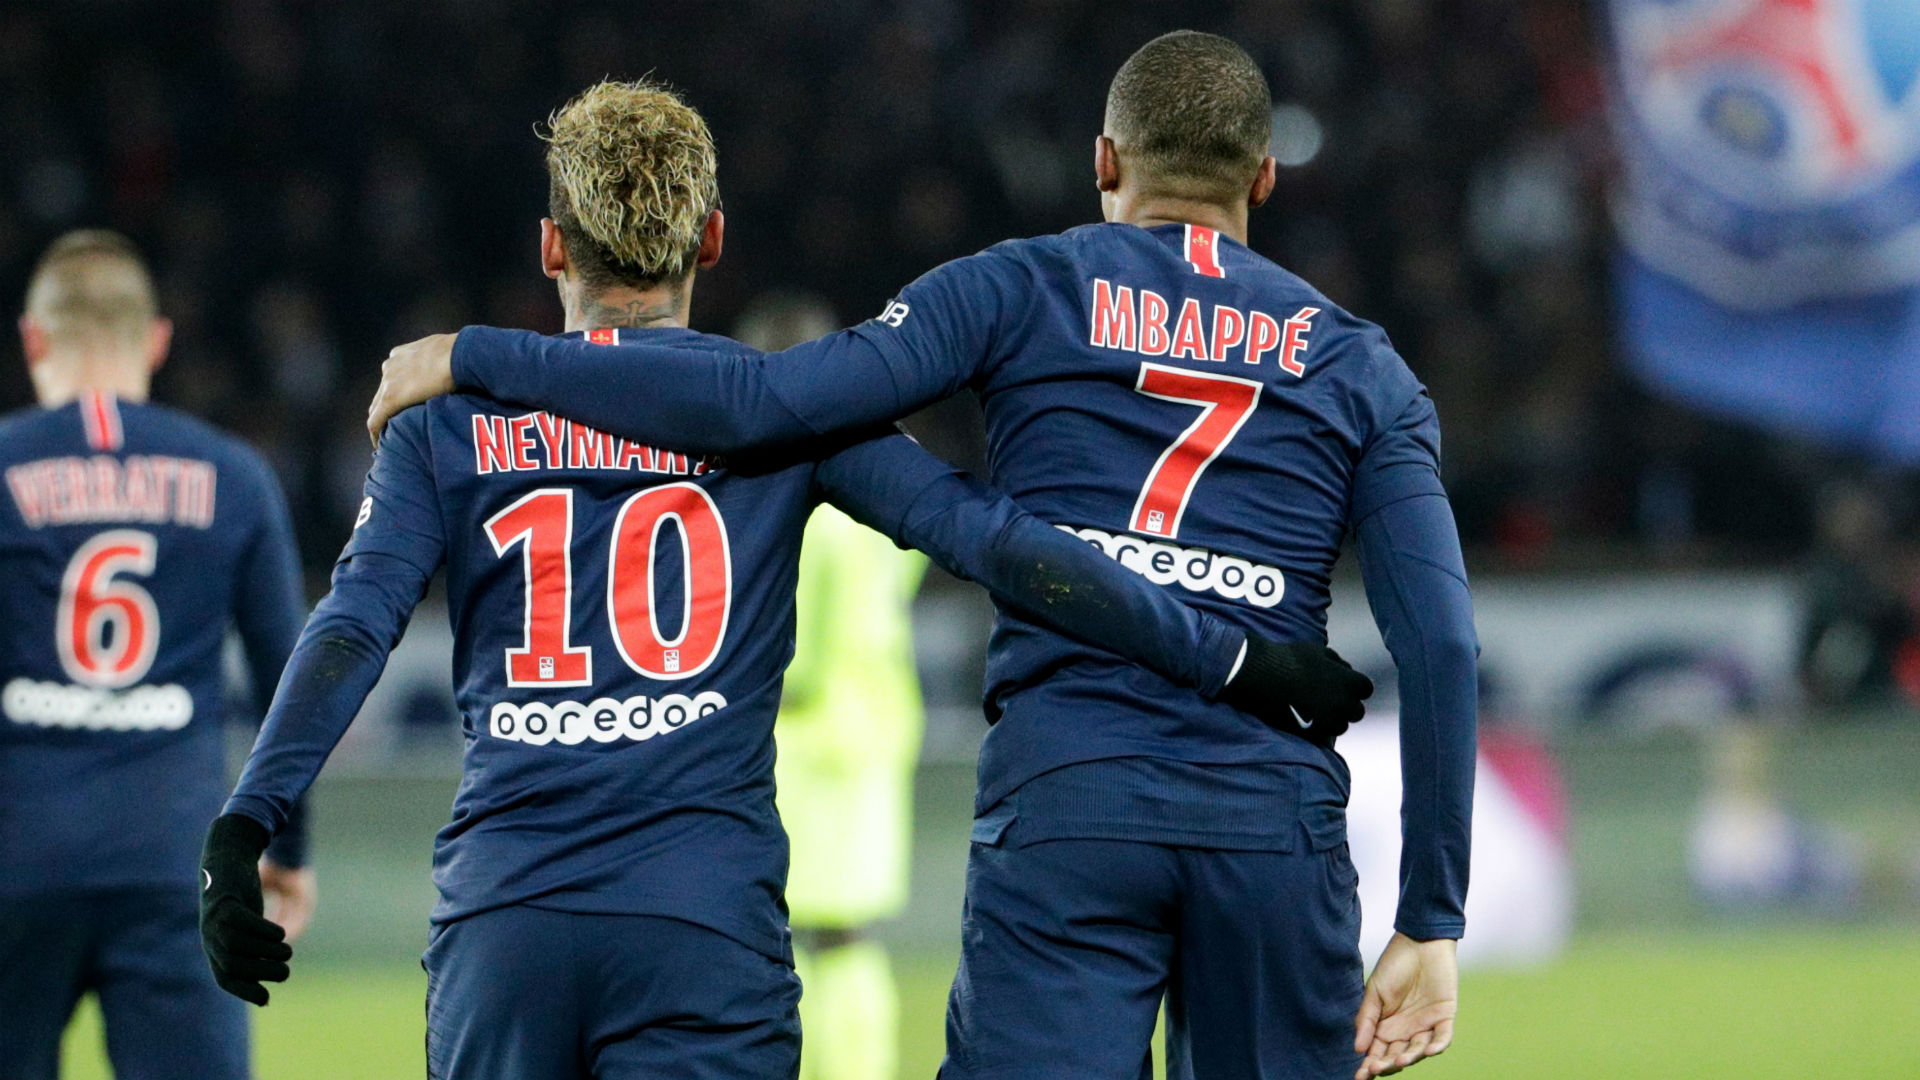 After a draining week in which Paris Saint-Germain went out of the Coupe de la Ligue, Neymar and Kylian Mbappe are struggling with fatigue.